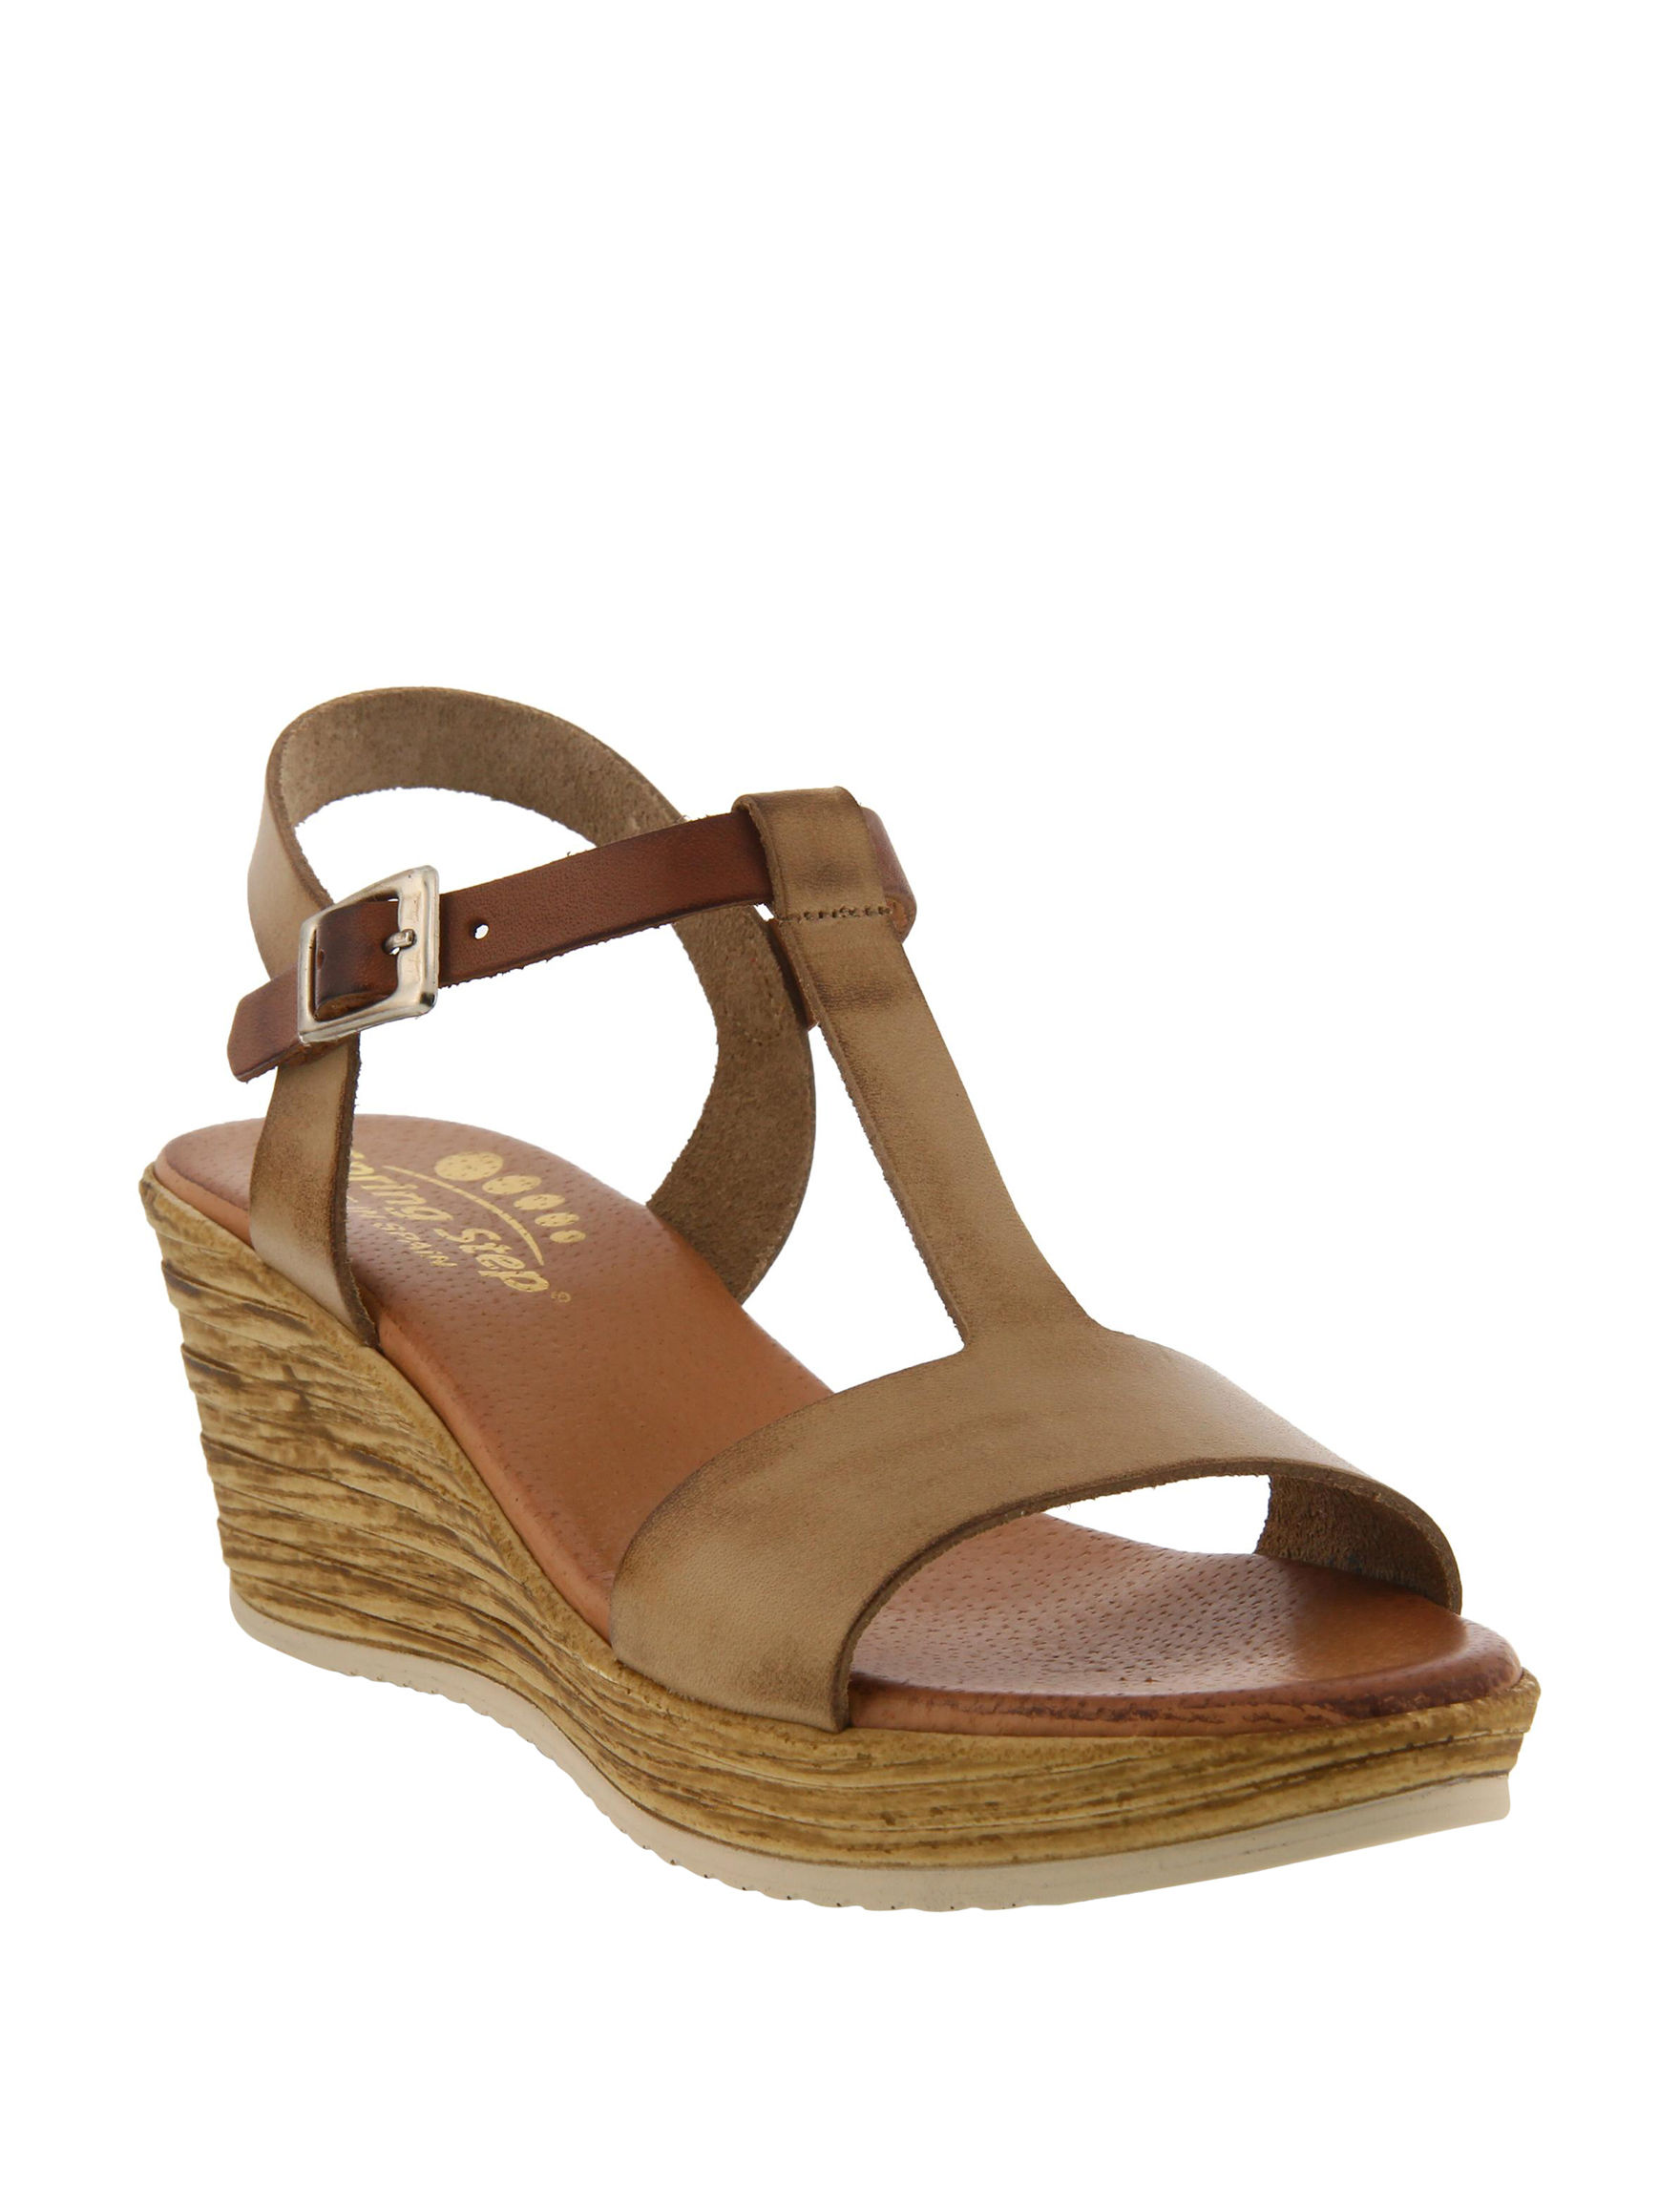 Spring Step Taupe Wedge Sandals